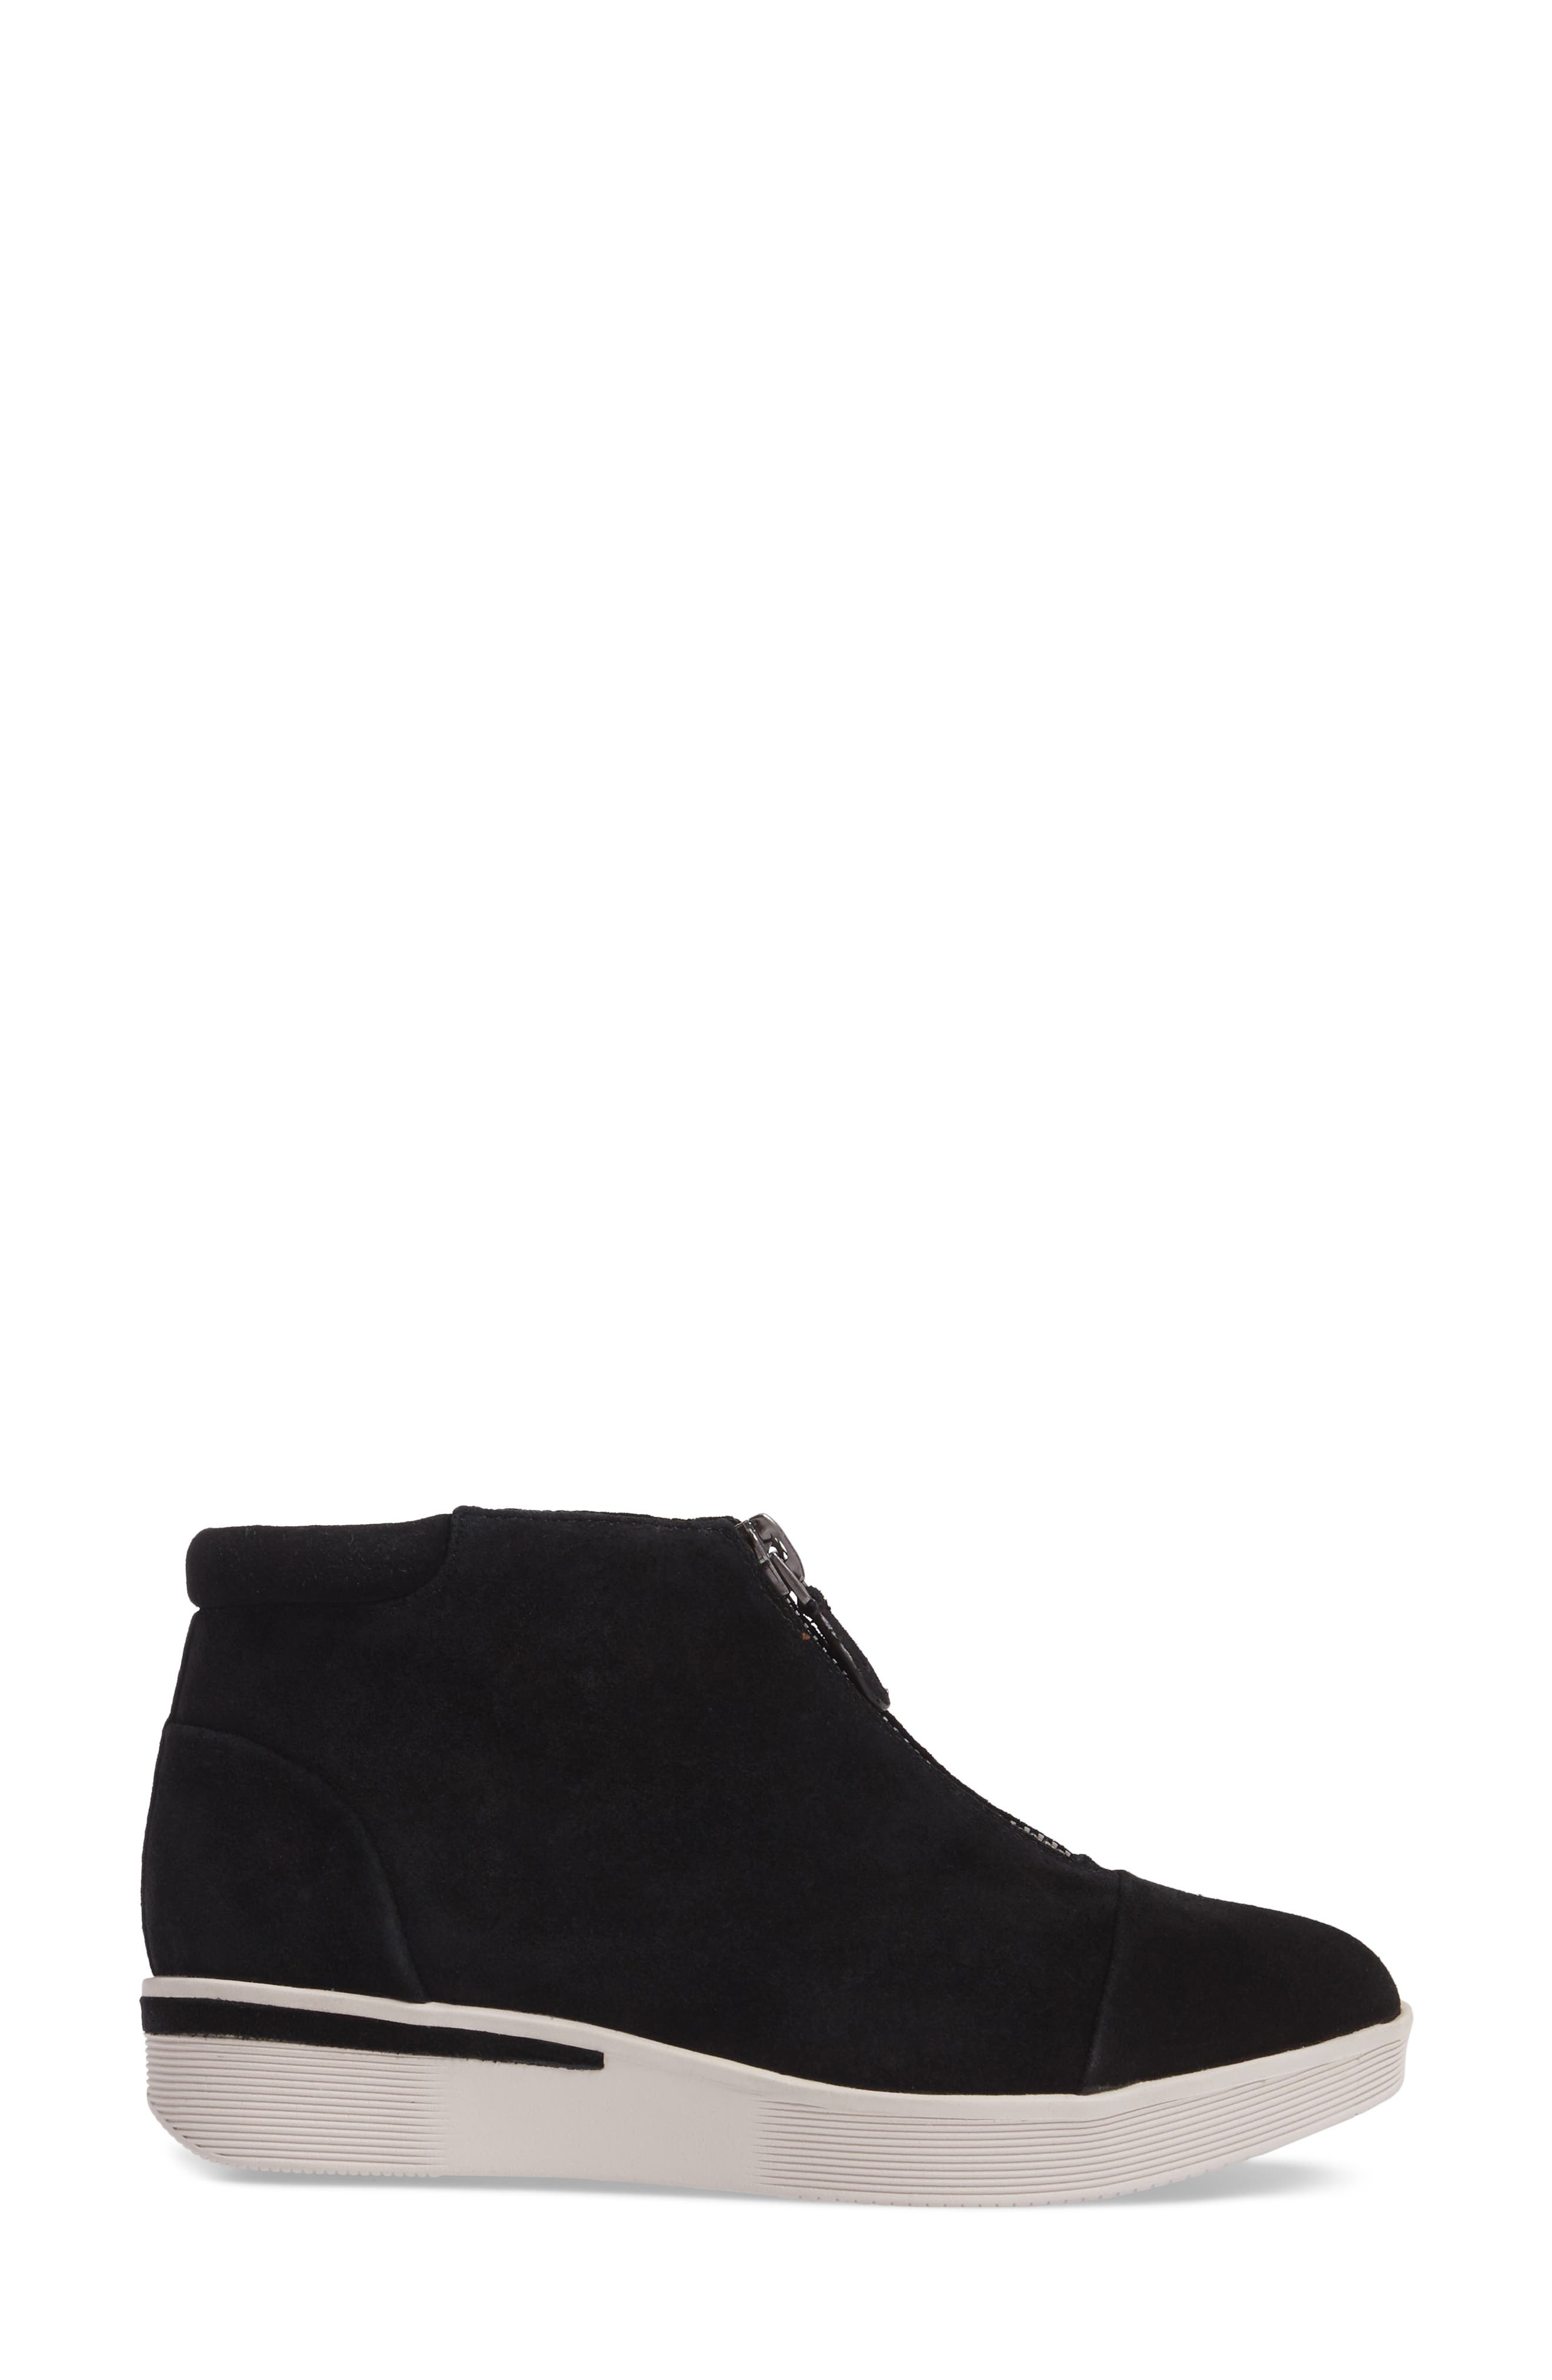 GENTLE SOULS BY KENNETH COLE, Hazel Fay High Top Sneaker, Alternate thumbnail 3, color, BLACK SUEDE